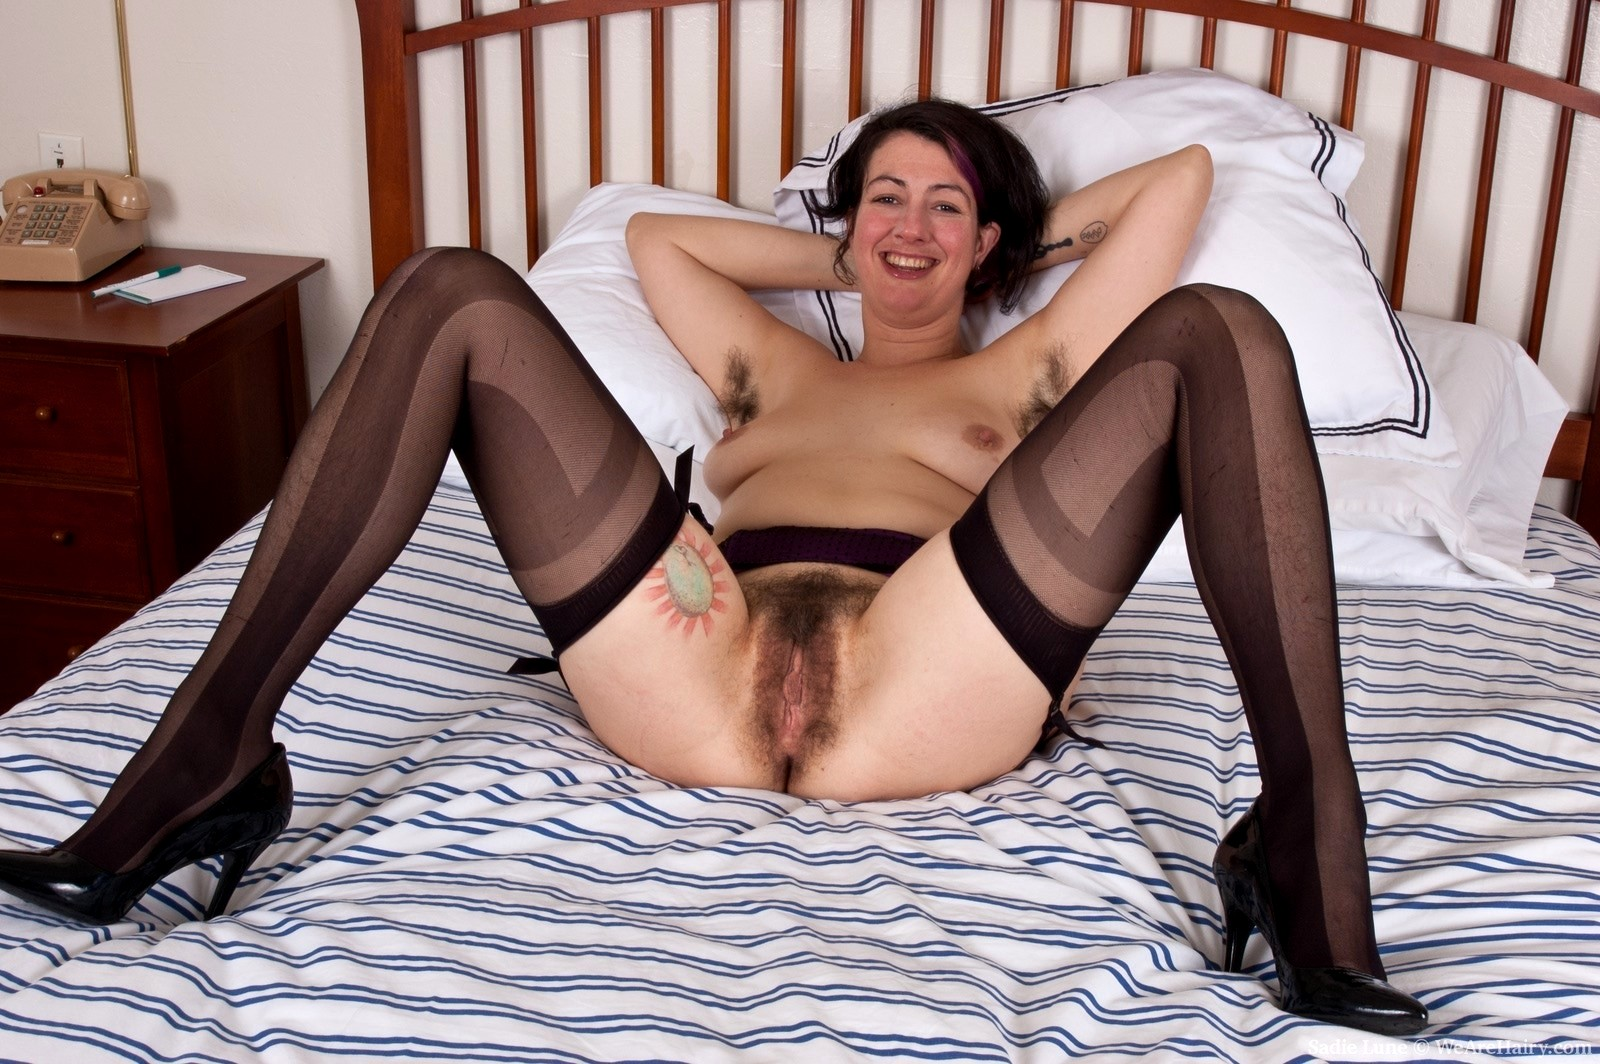 hairy-pussy-ladies-in-stockings-interracial-caption-pics